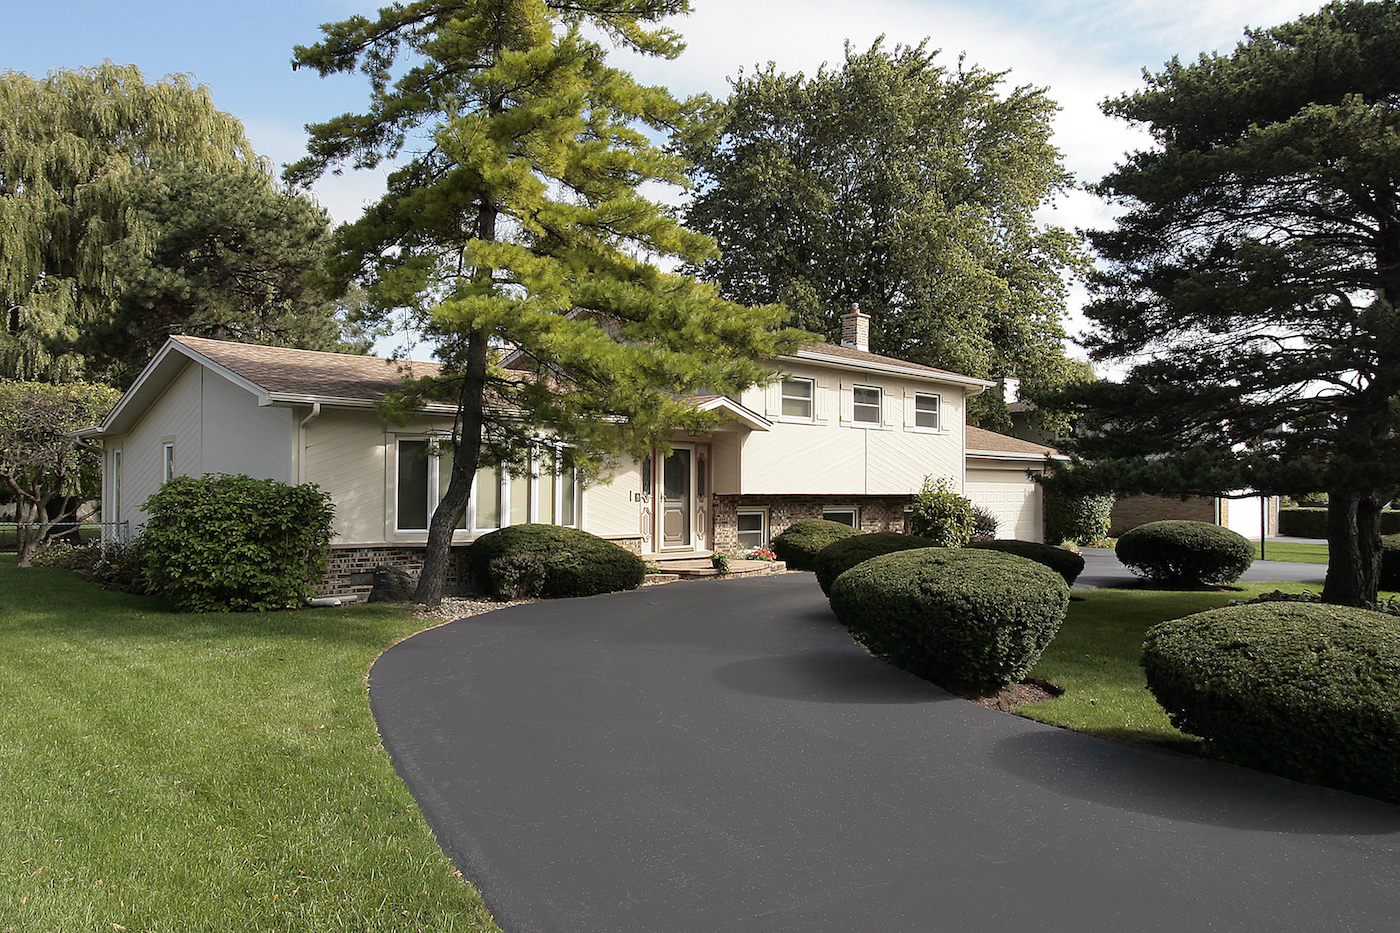 Asphalt-Sealing-Striping-Reeves-Construction-Roof-Gutters 1